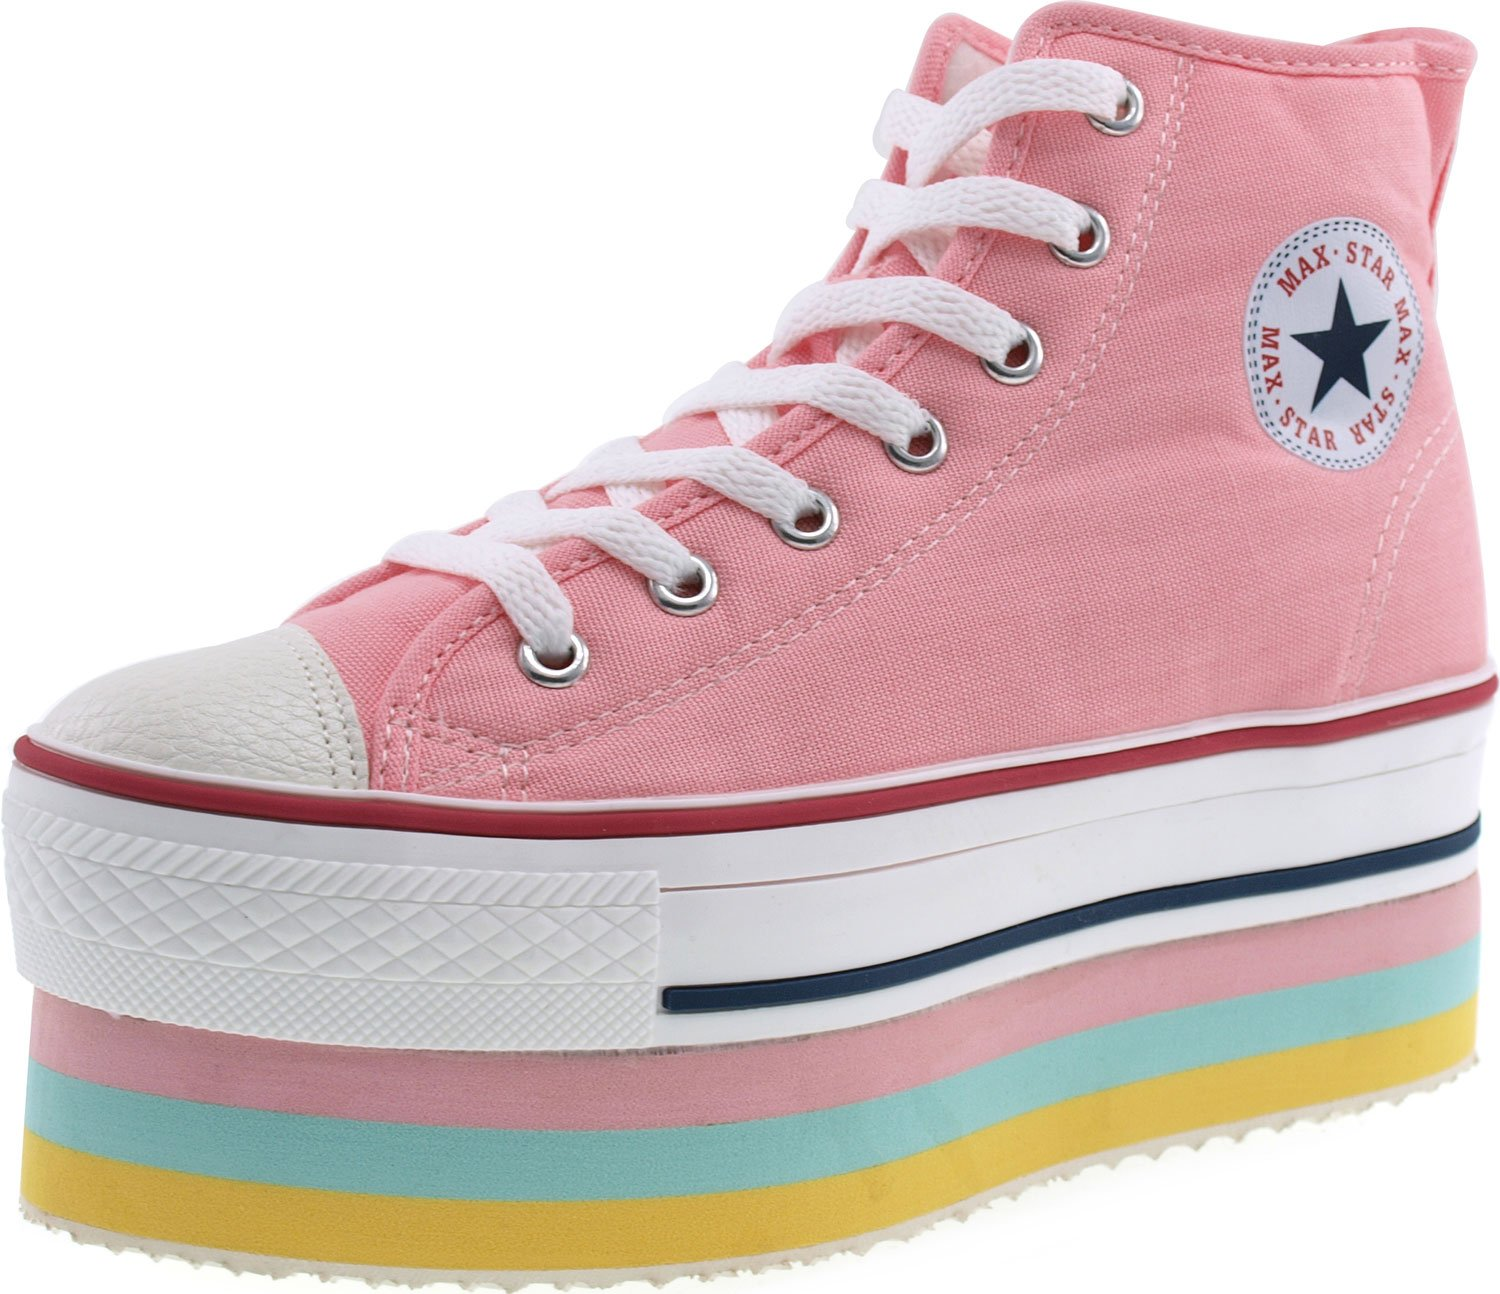 CN9 8 Holes Double Platform Denim Studed Taller Insole High Top Sneakers B00D12HUHK 9 B(M) US|Pink